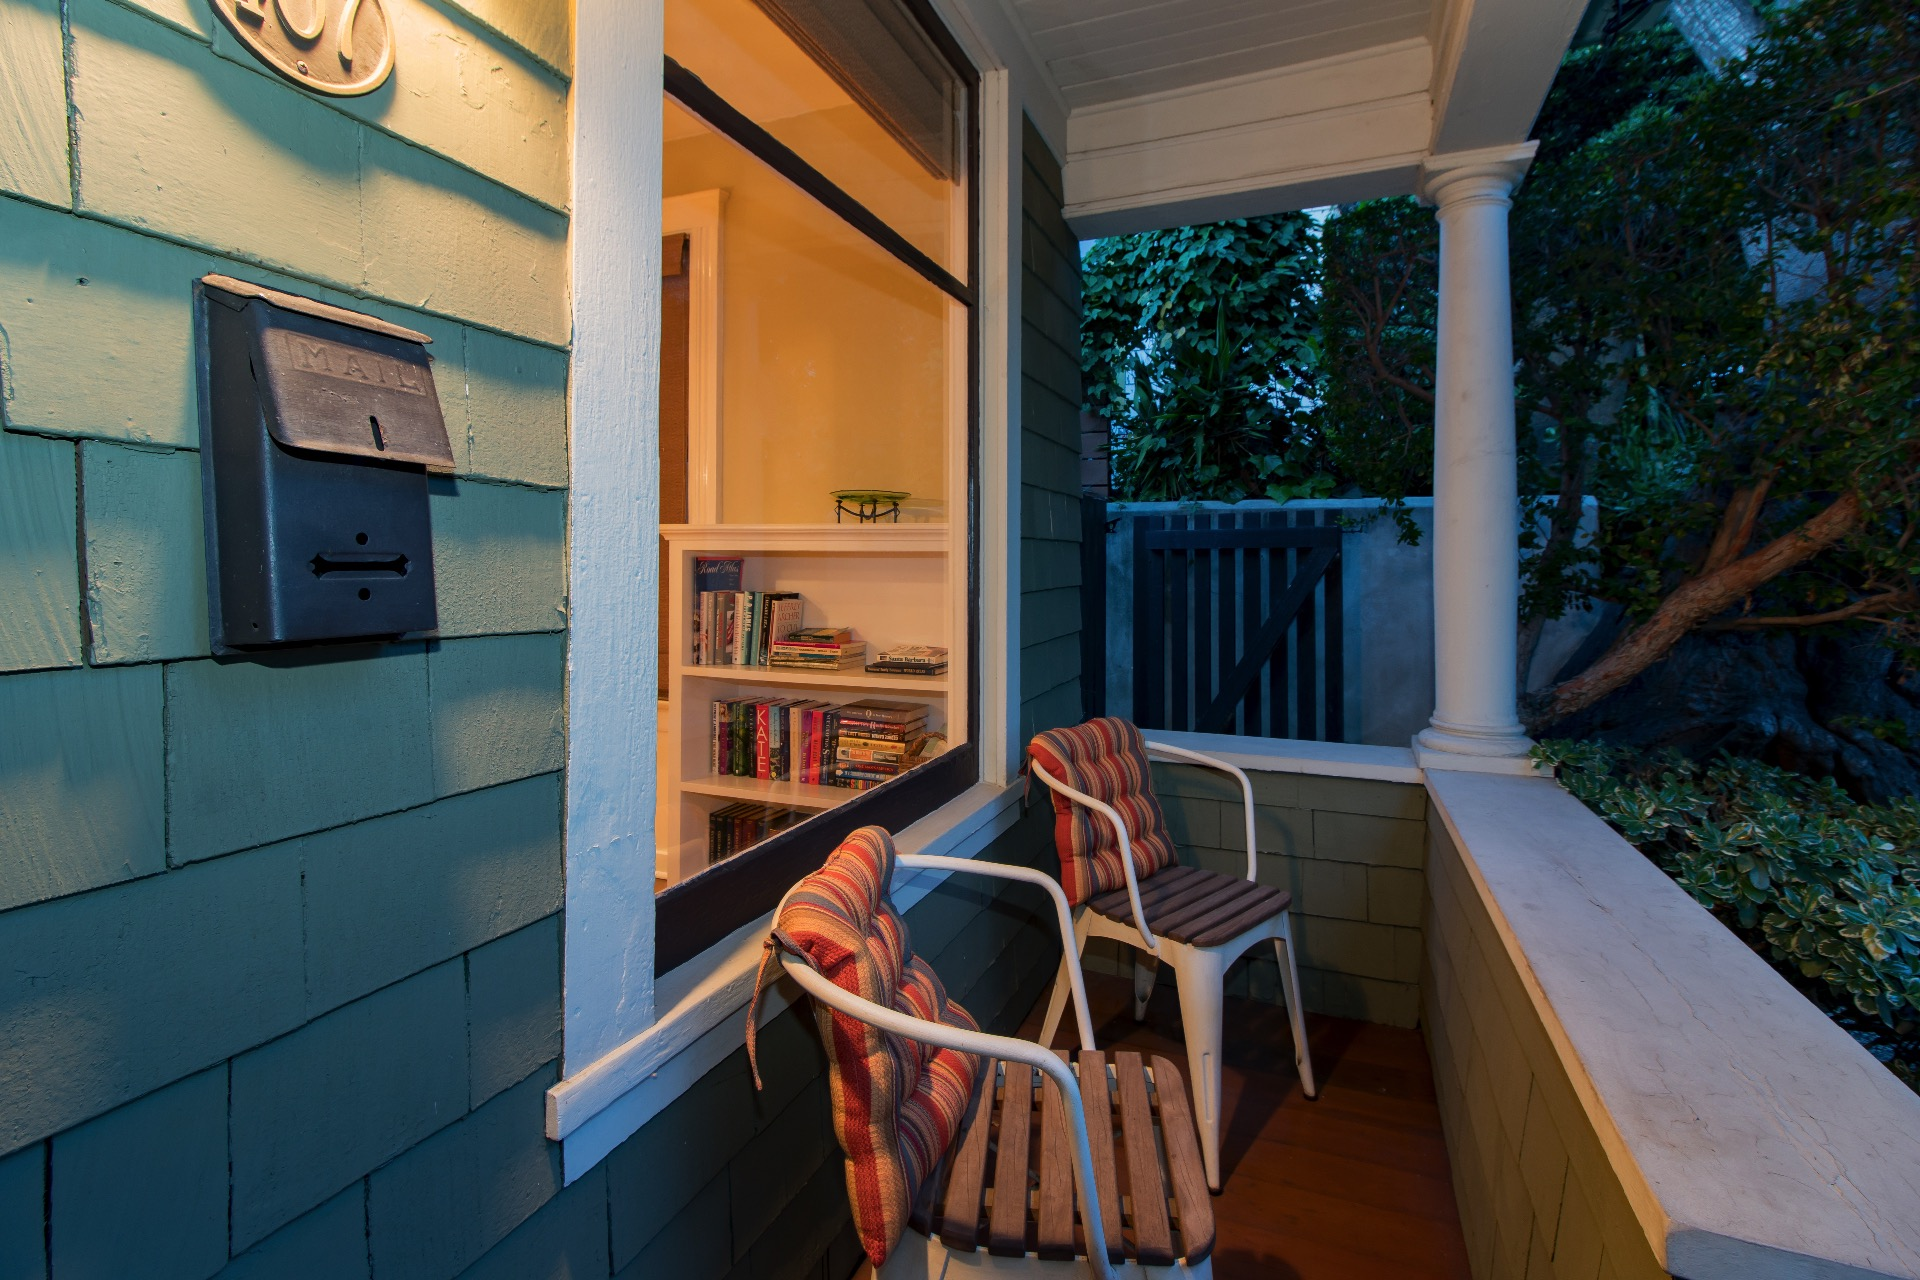 Cozy front porch with two chairs.